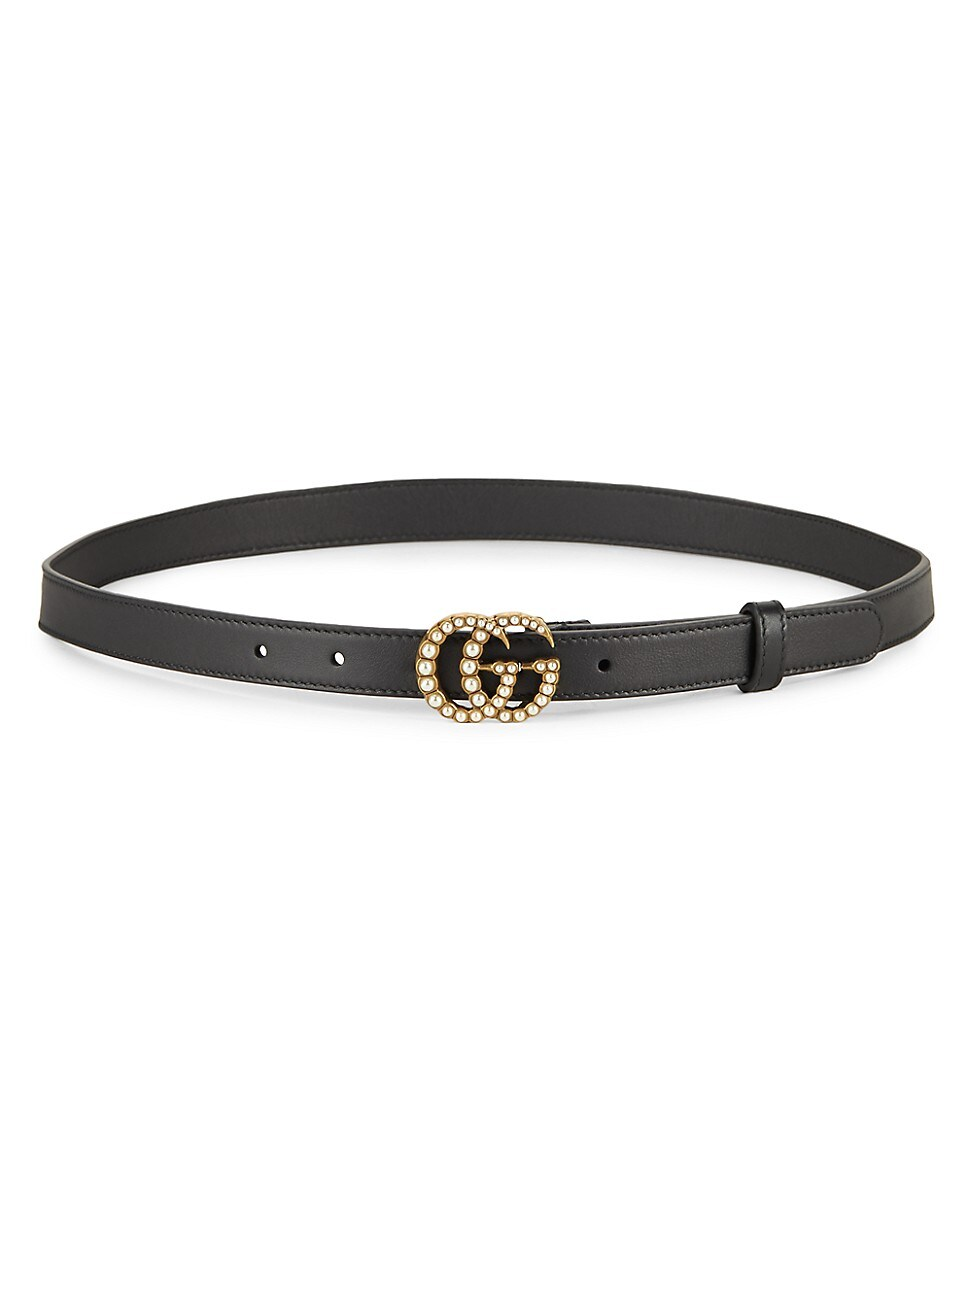 Gucci WOMEN'S PEARLY GG LEATHER BELT